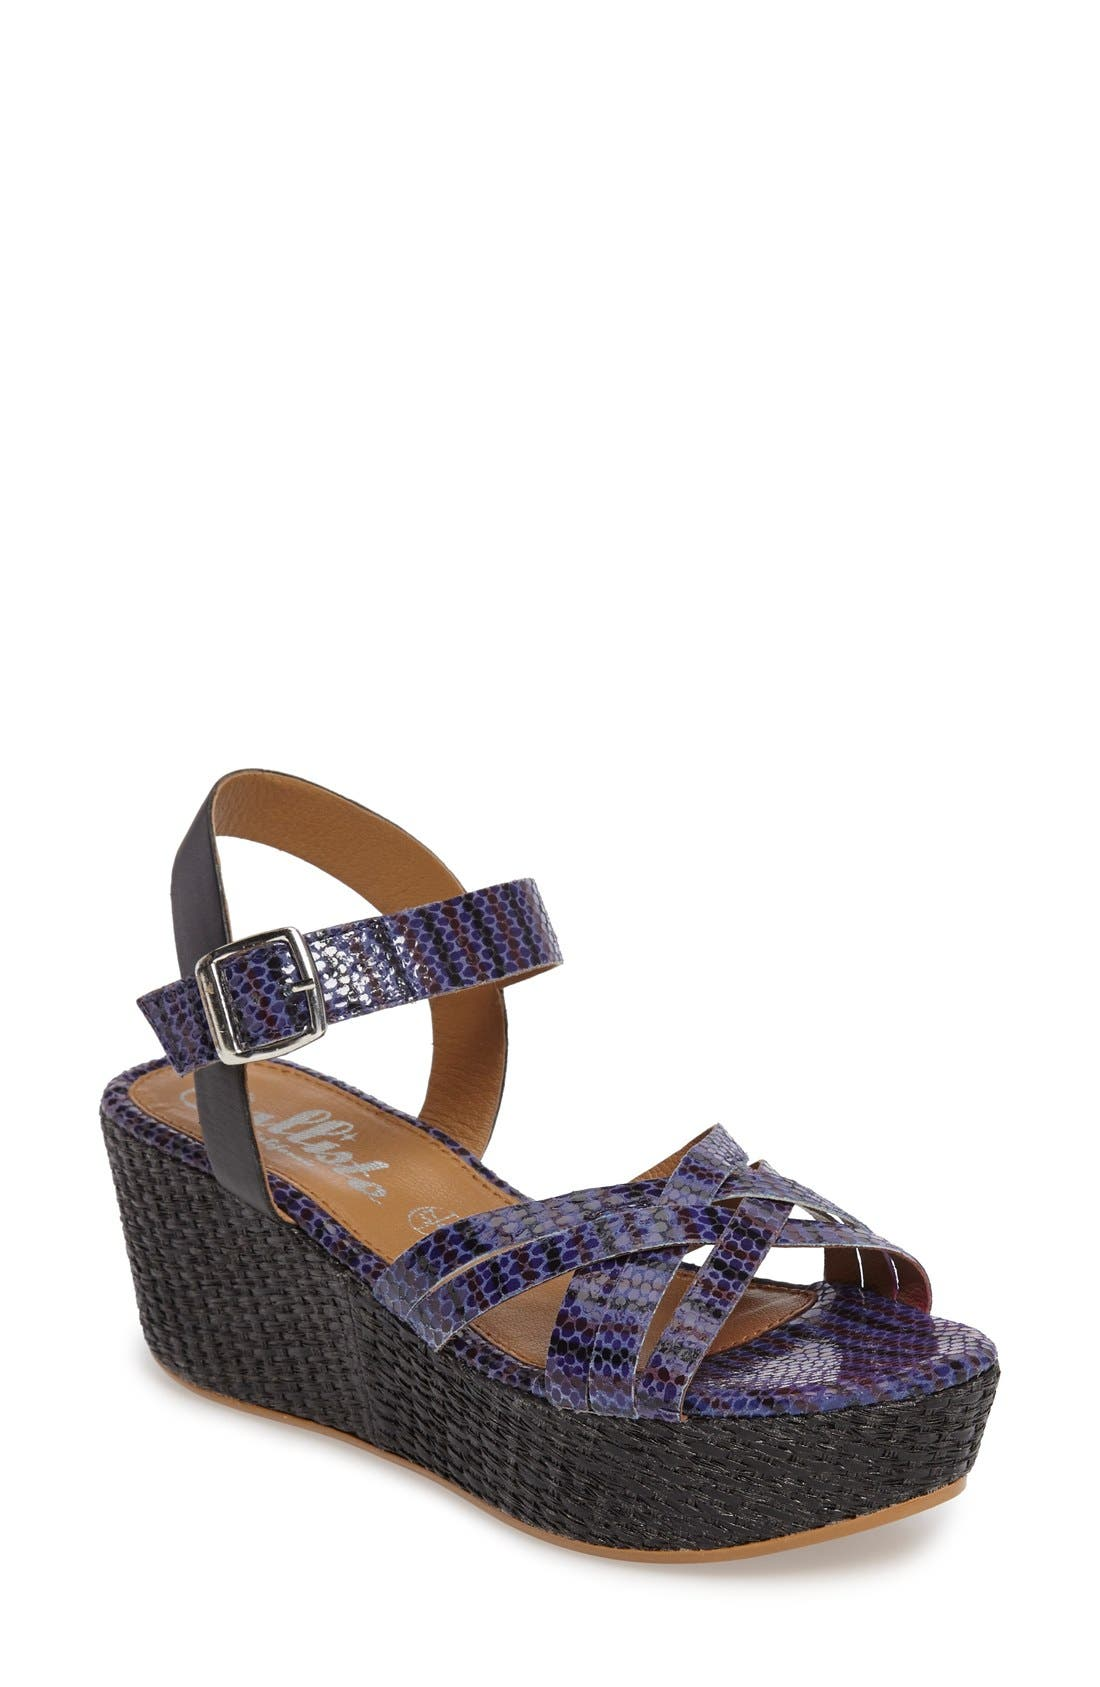 Valencia Platform Wedge Sandal,                             Main thumbnail 1, color,                             429